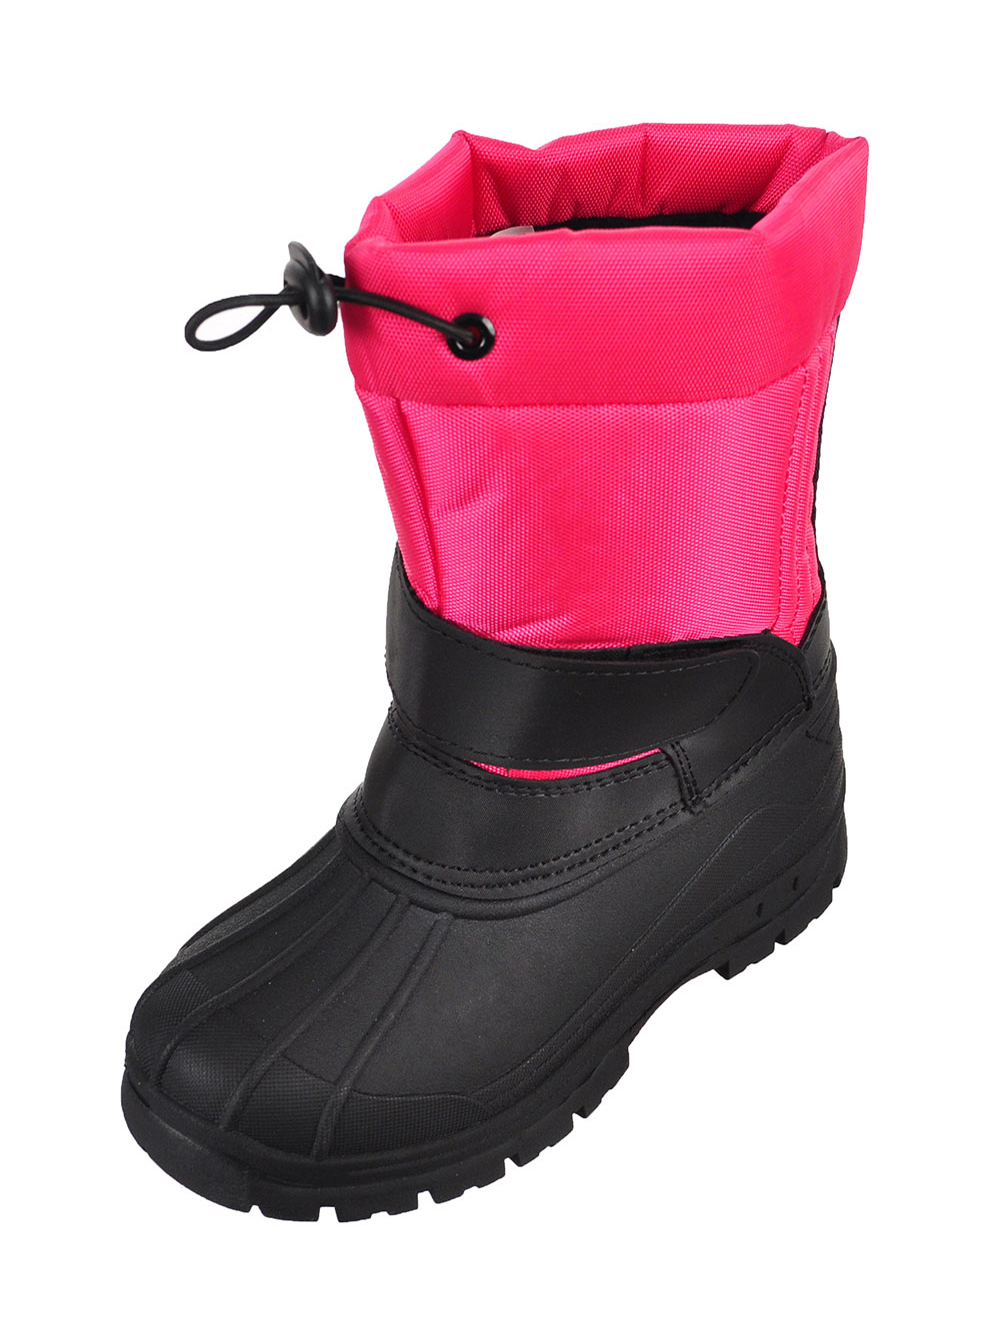 5b420ad63c61b Girls' Winter Boots by Ice20 in Fuchsia/black